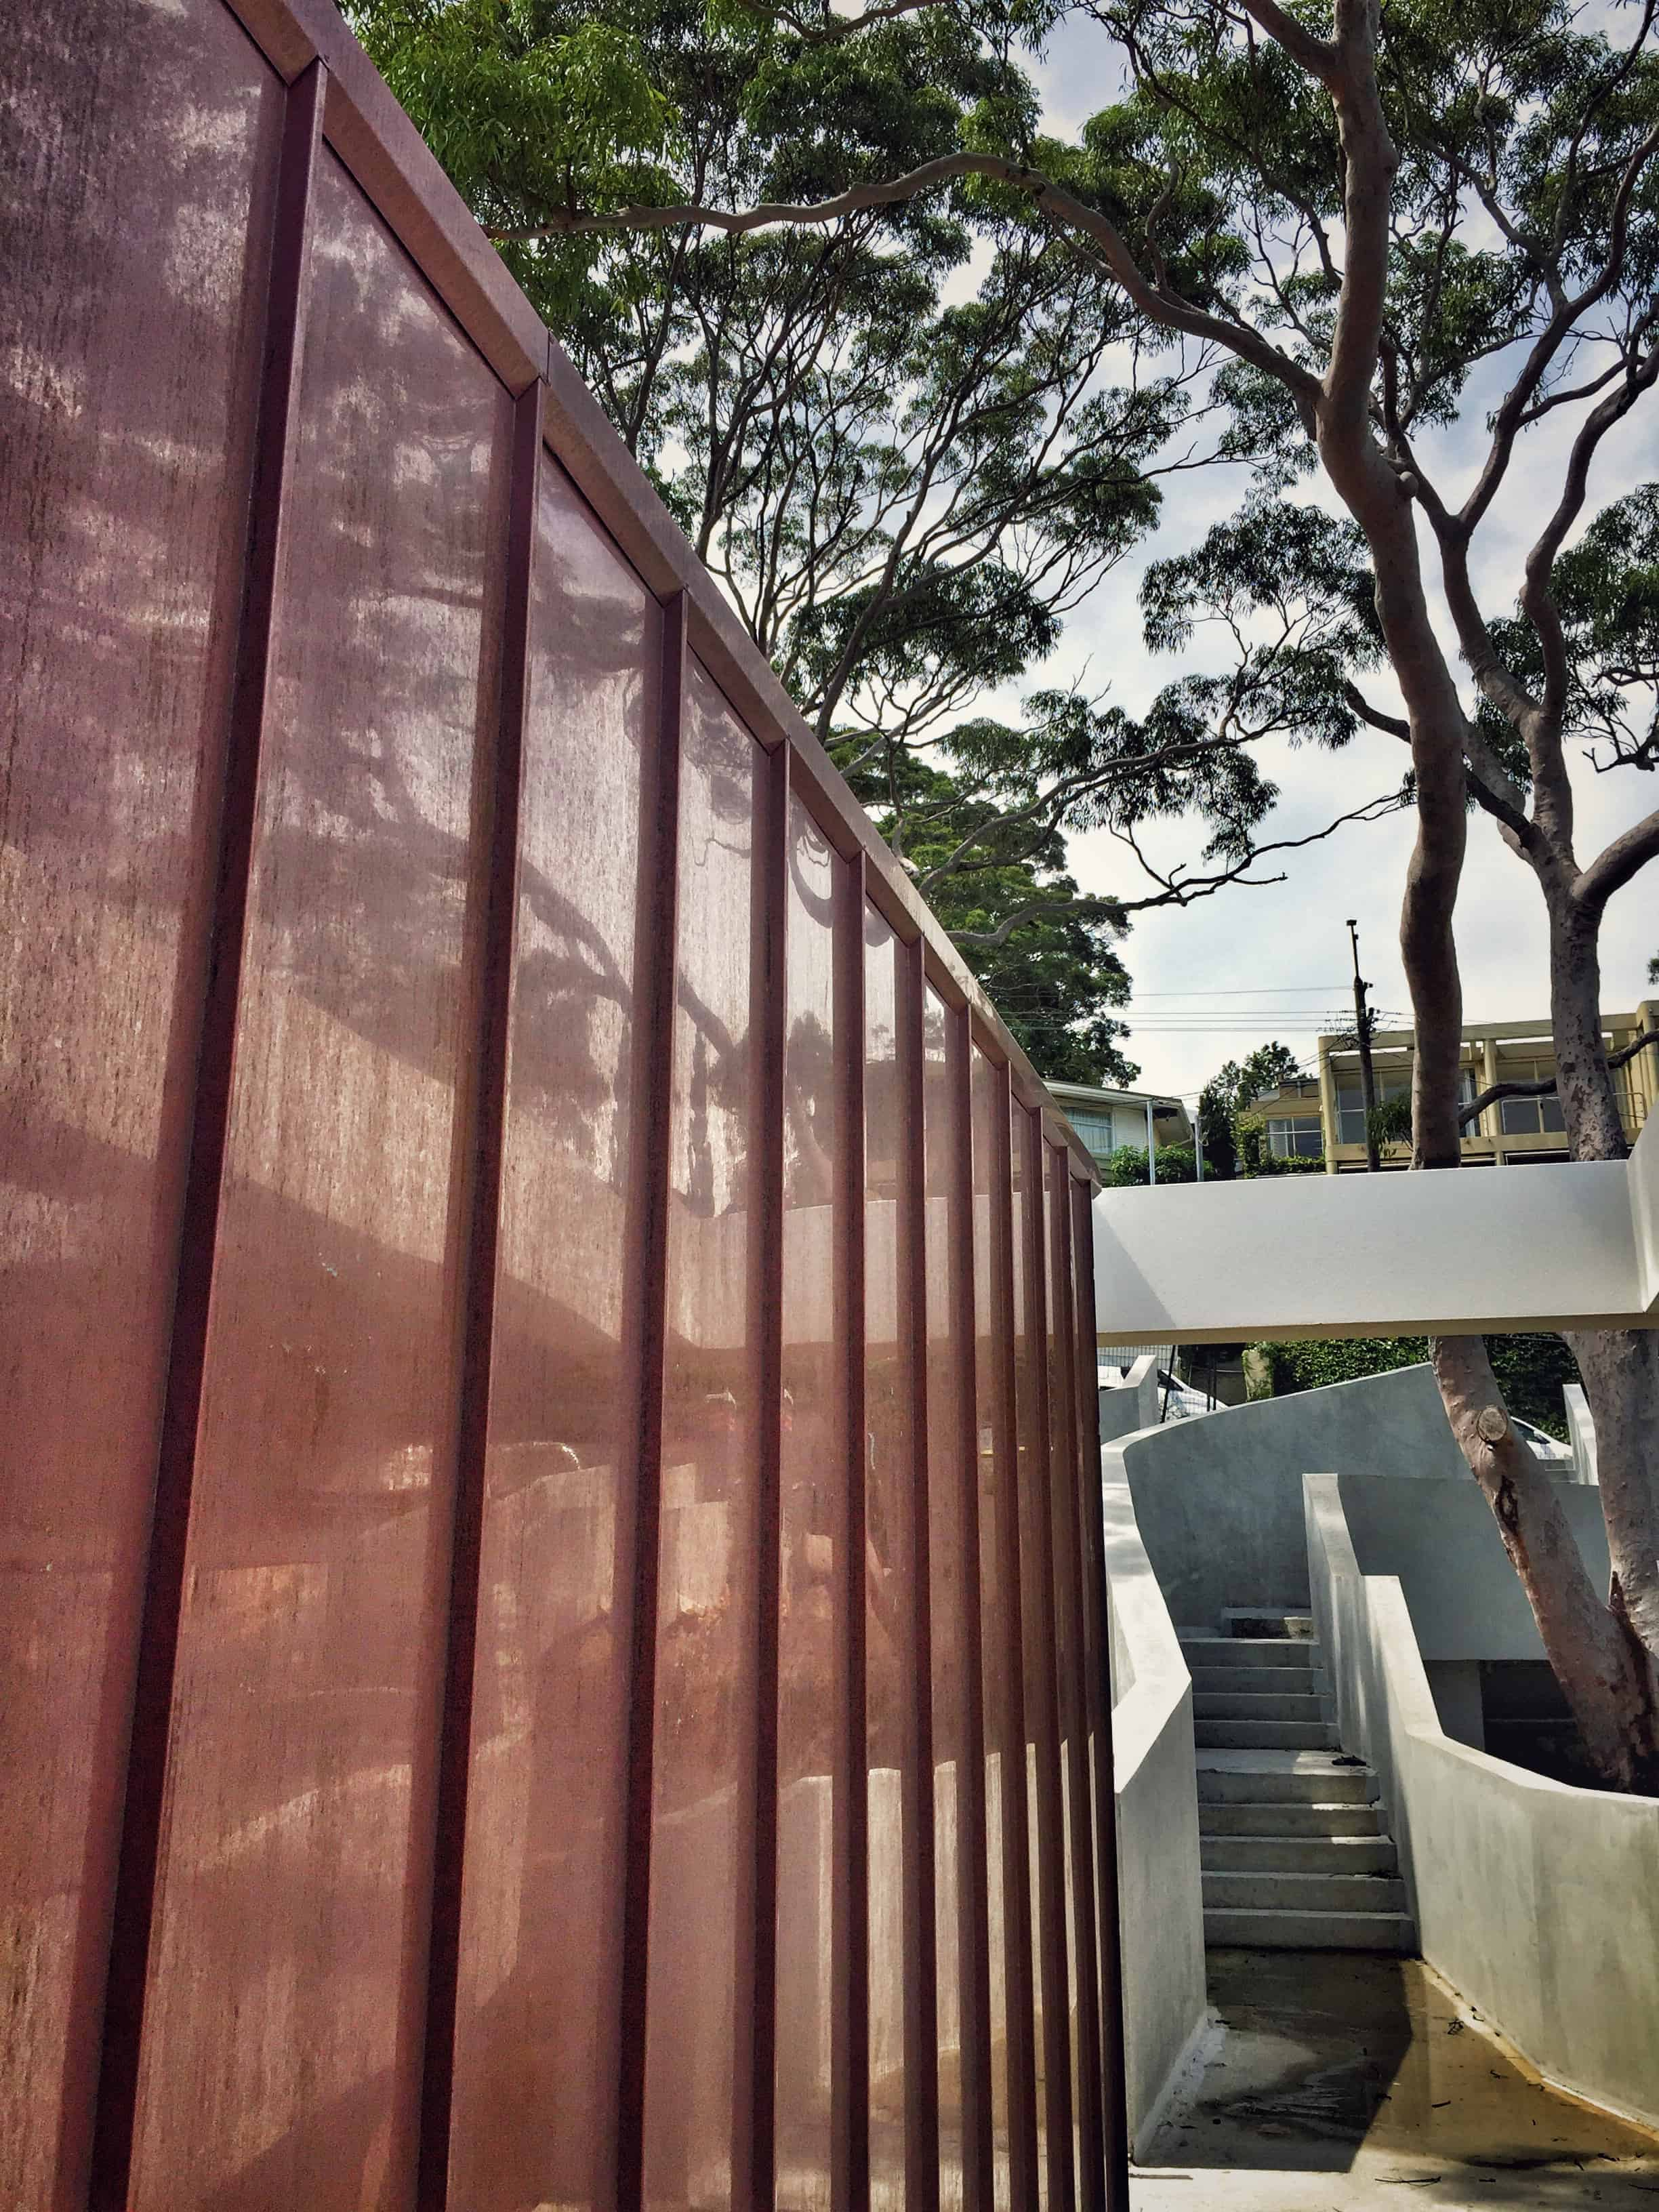 Standing Seam Corten Cladding to Walls